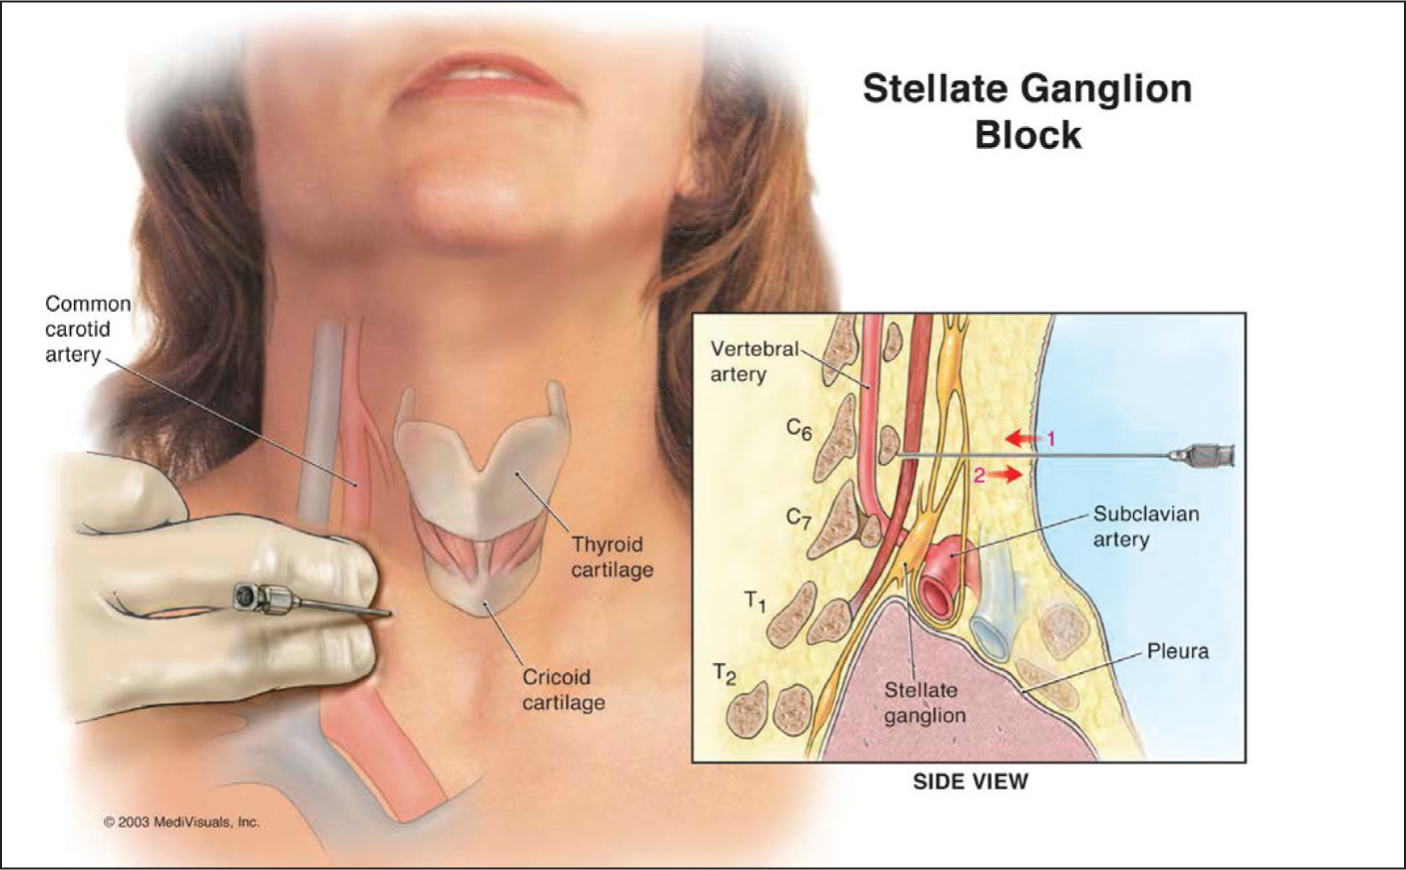 Stellate ganglion block technique.Image courtesy of Maryam Navaie, DrPH. Reprinted with permission.